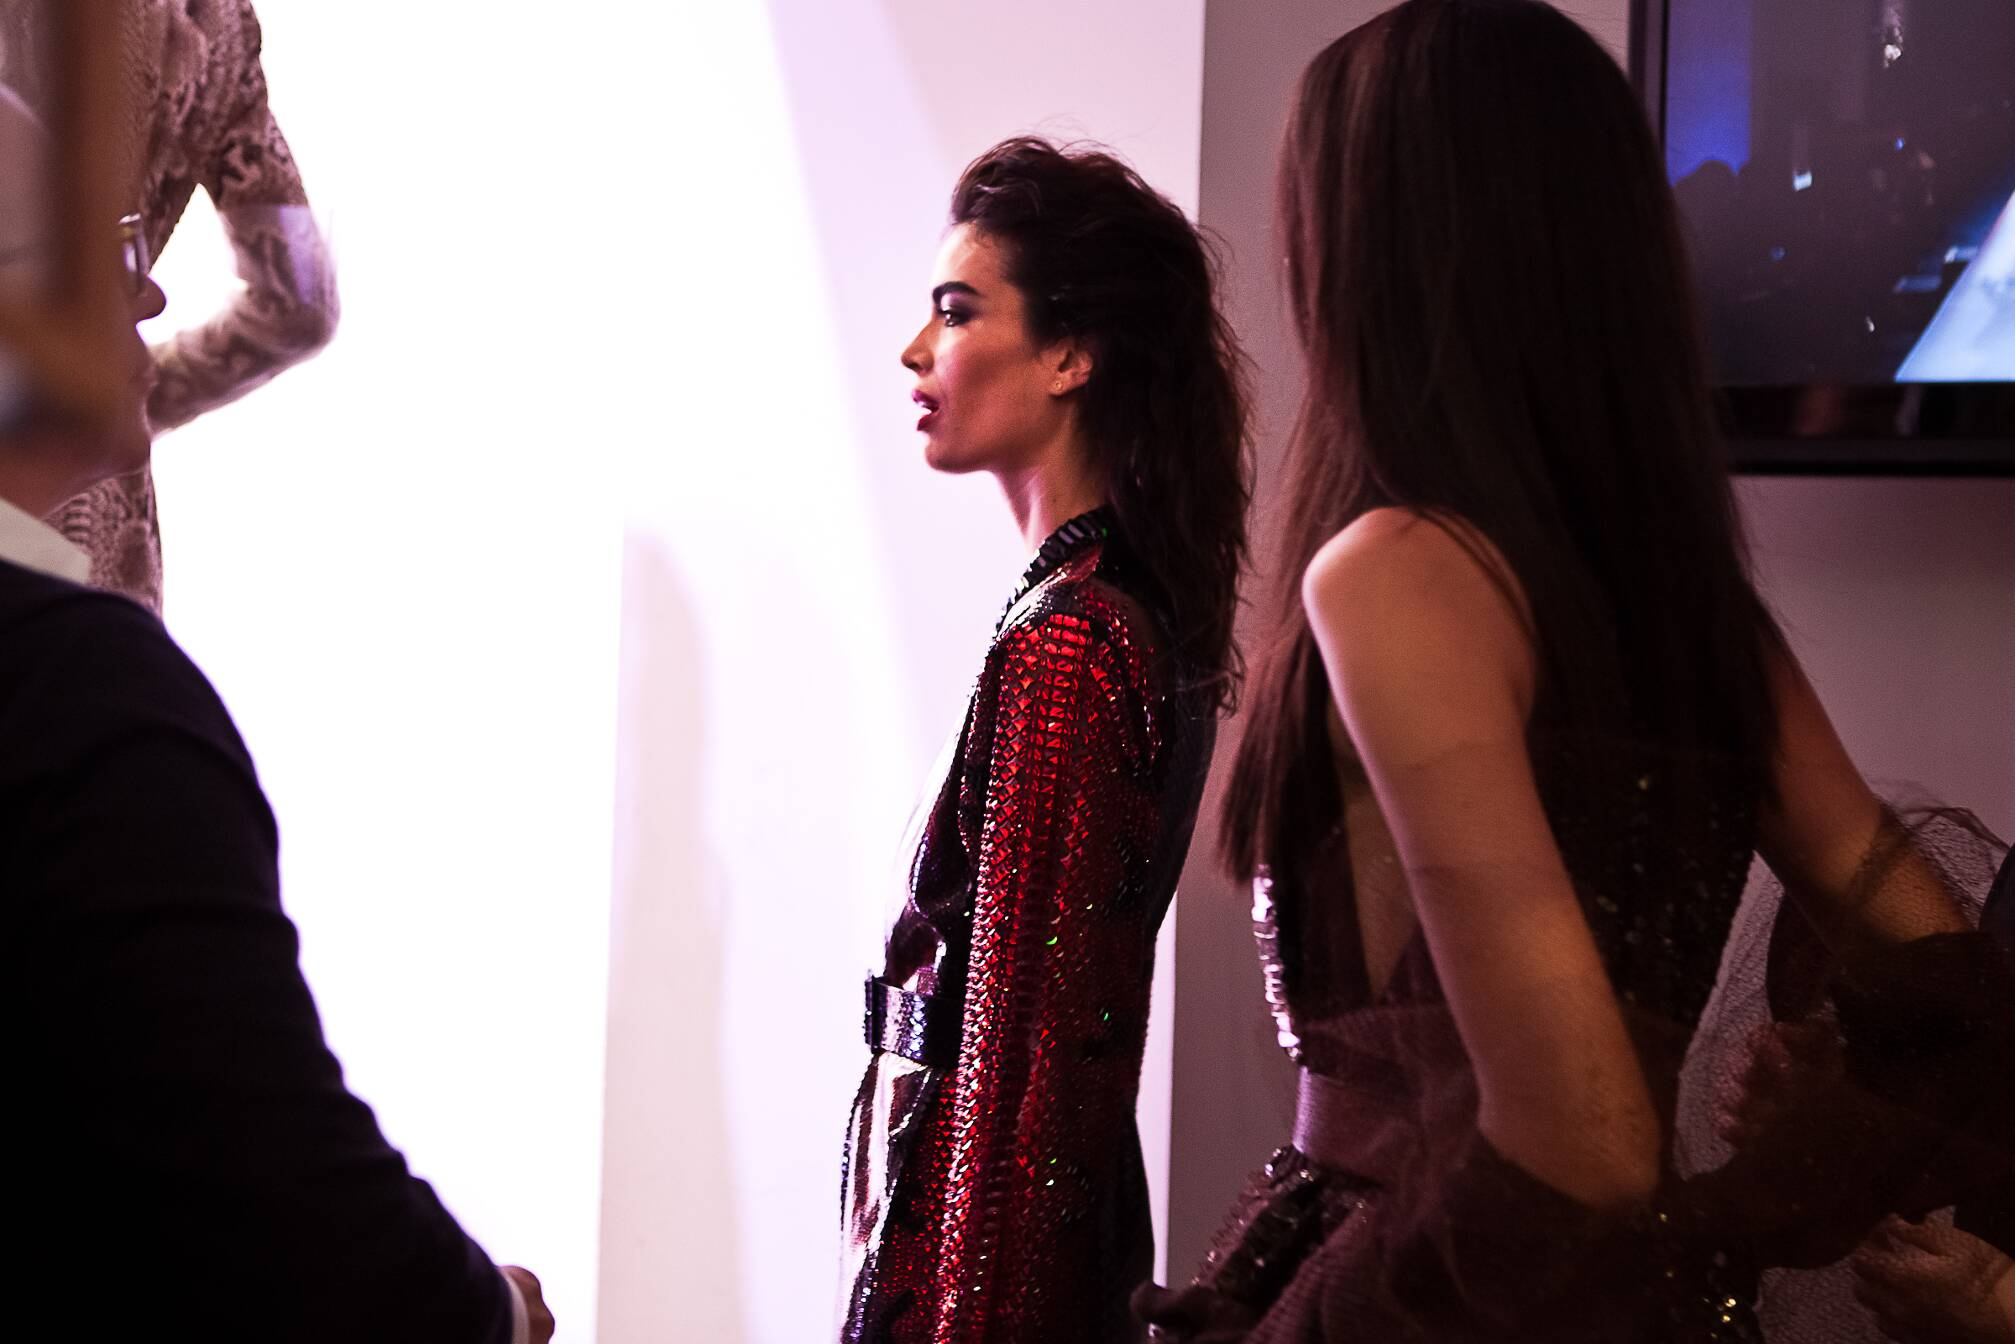 Jean Paul Gaultier Haute Couture SS 2015 Womenswear Backstage